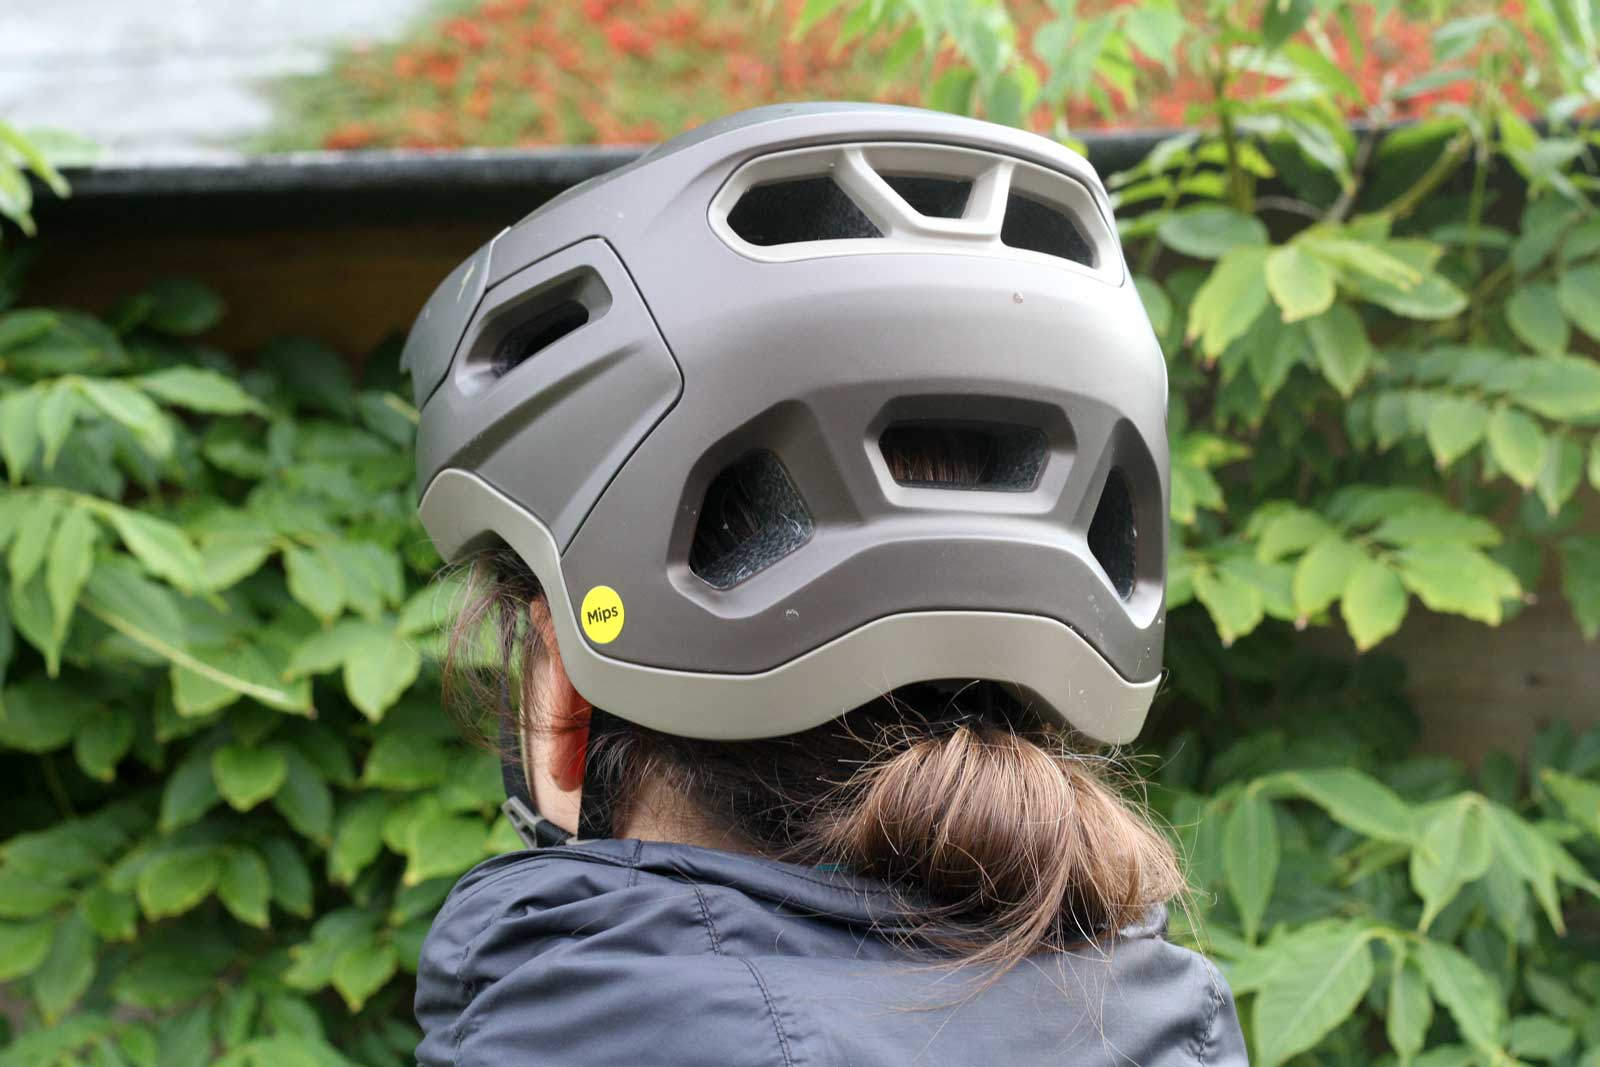 specialized tactic 4 helmet review extended rear coverage